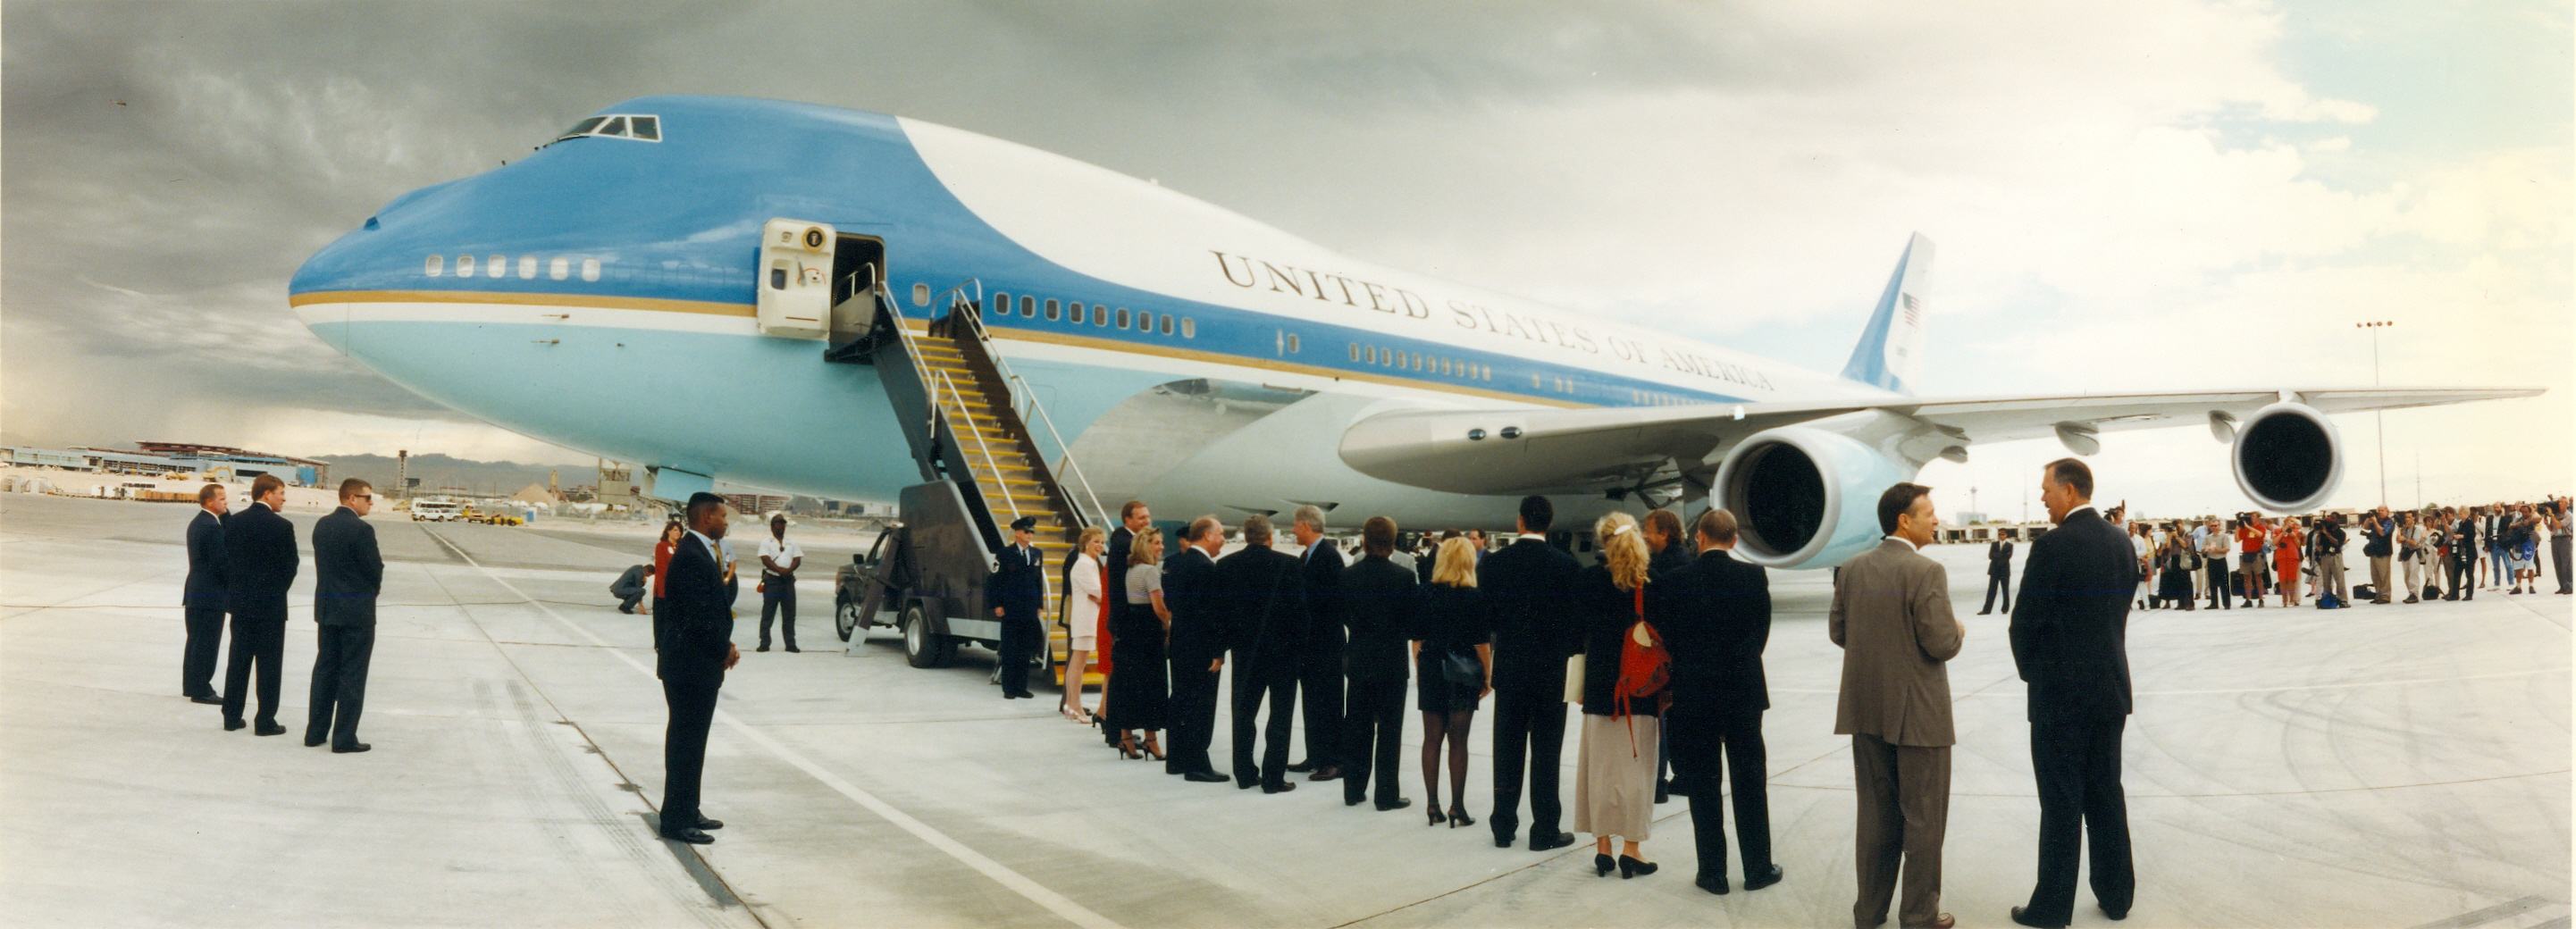 Presidential receiving line in front of Air Force One